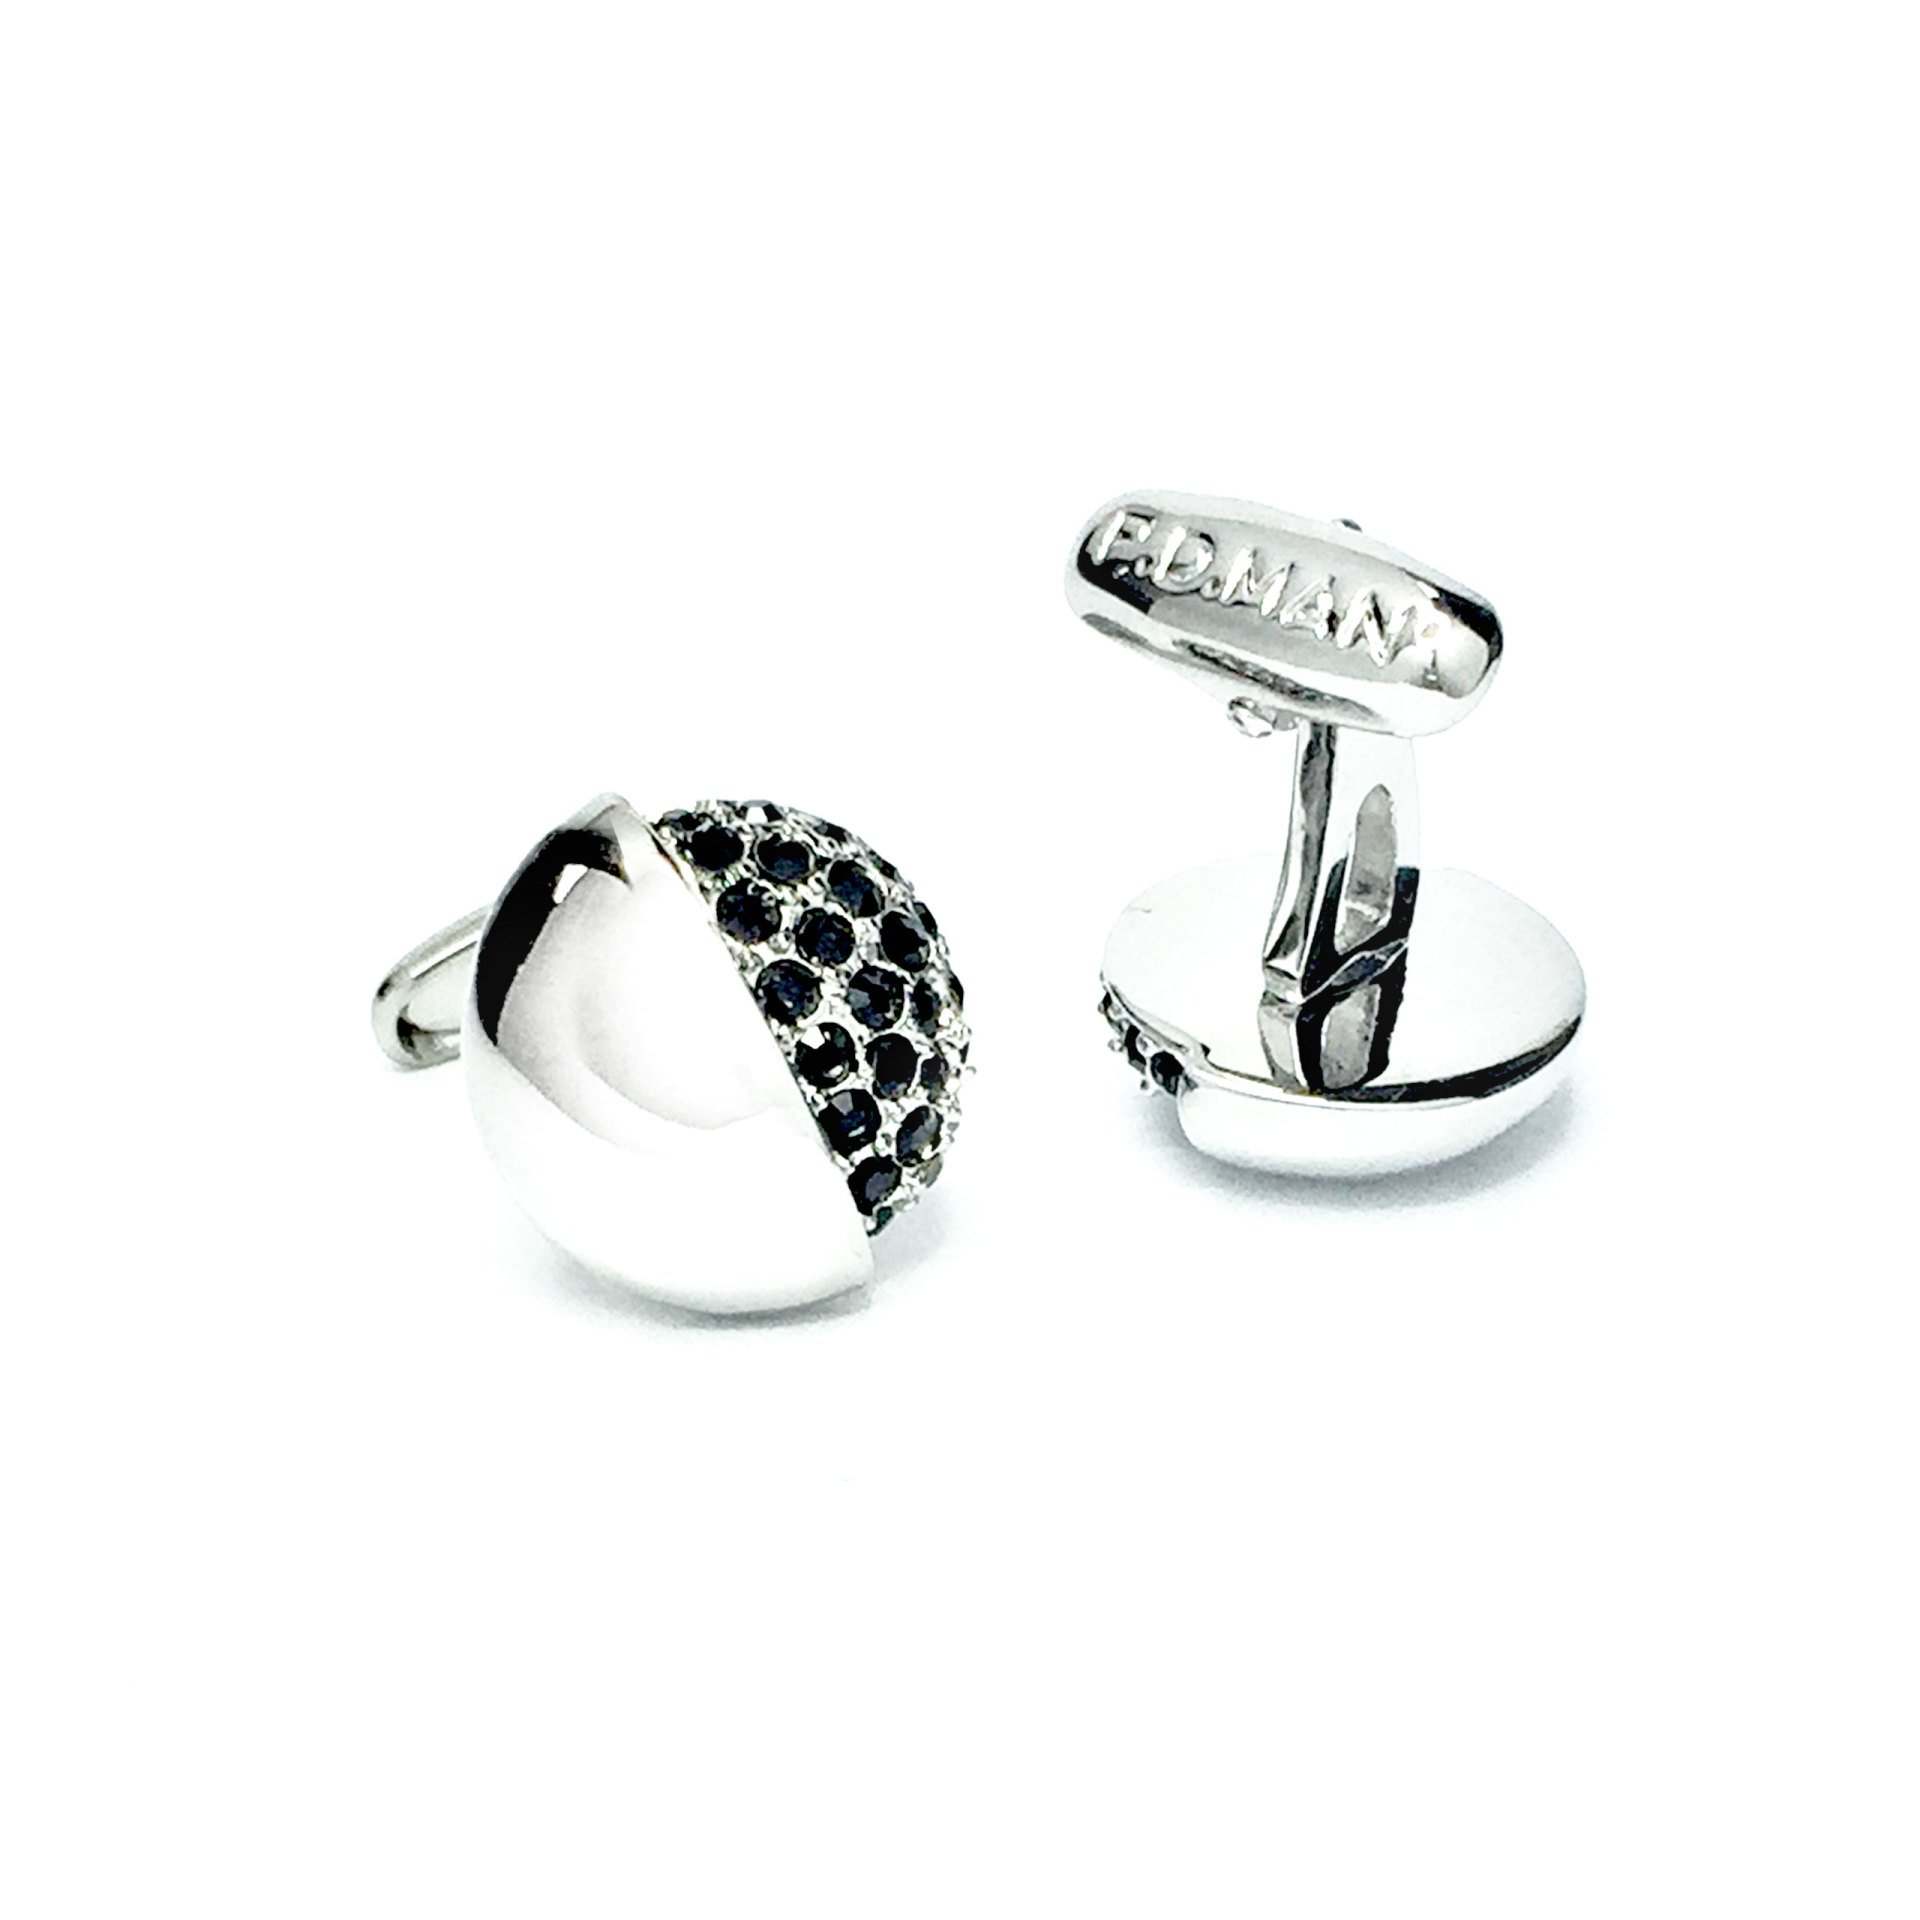 PDMAN England Classic Round Stripe Black Mother of Pearls MOP Cufflinks Cuff Links with Gift Box